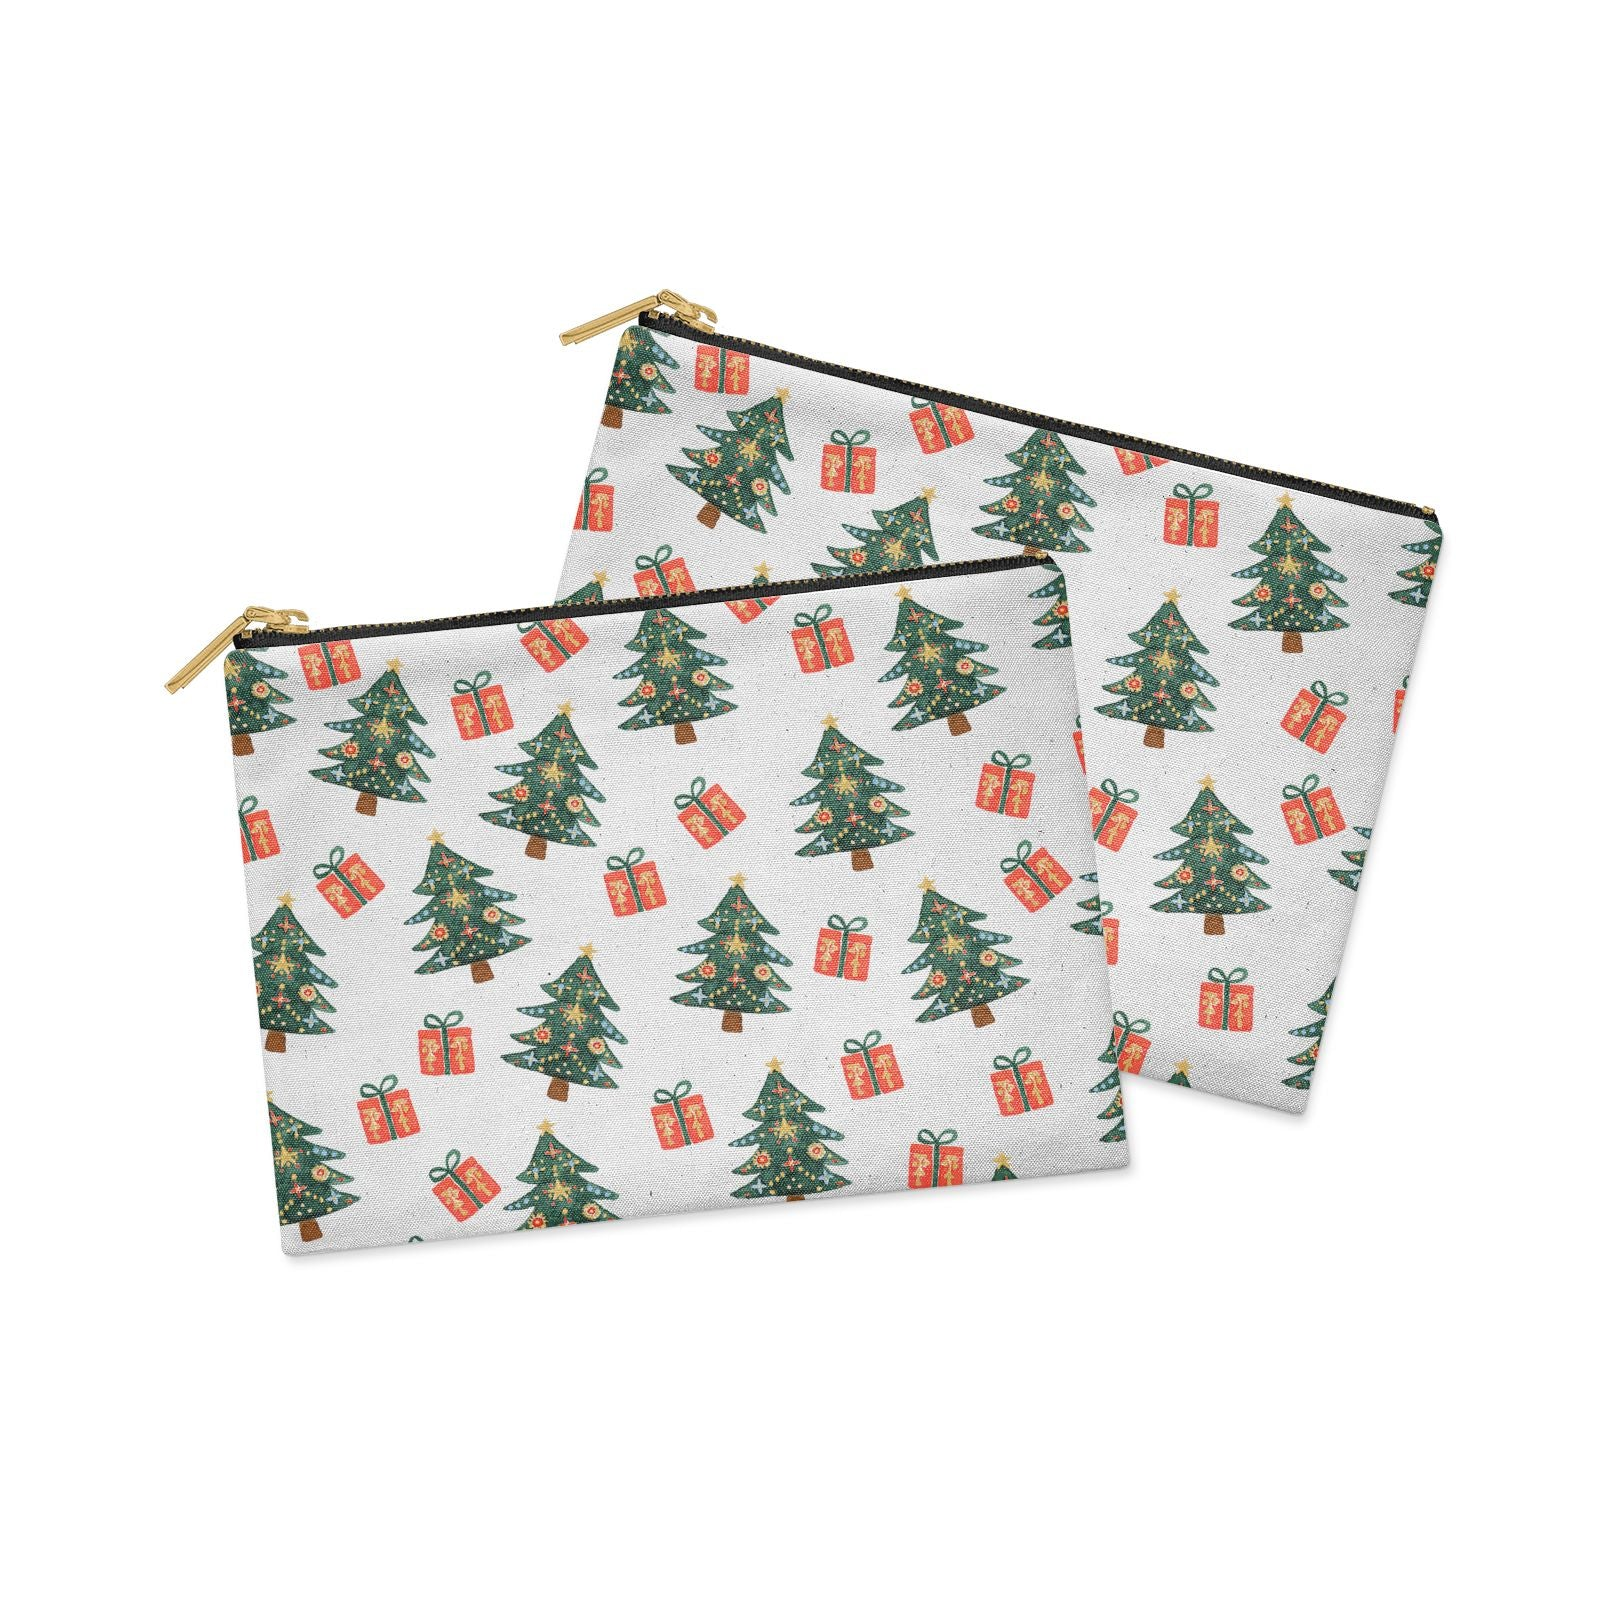 Christmas tree and presents Clutch Bag Zipper Pouch Alternative View